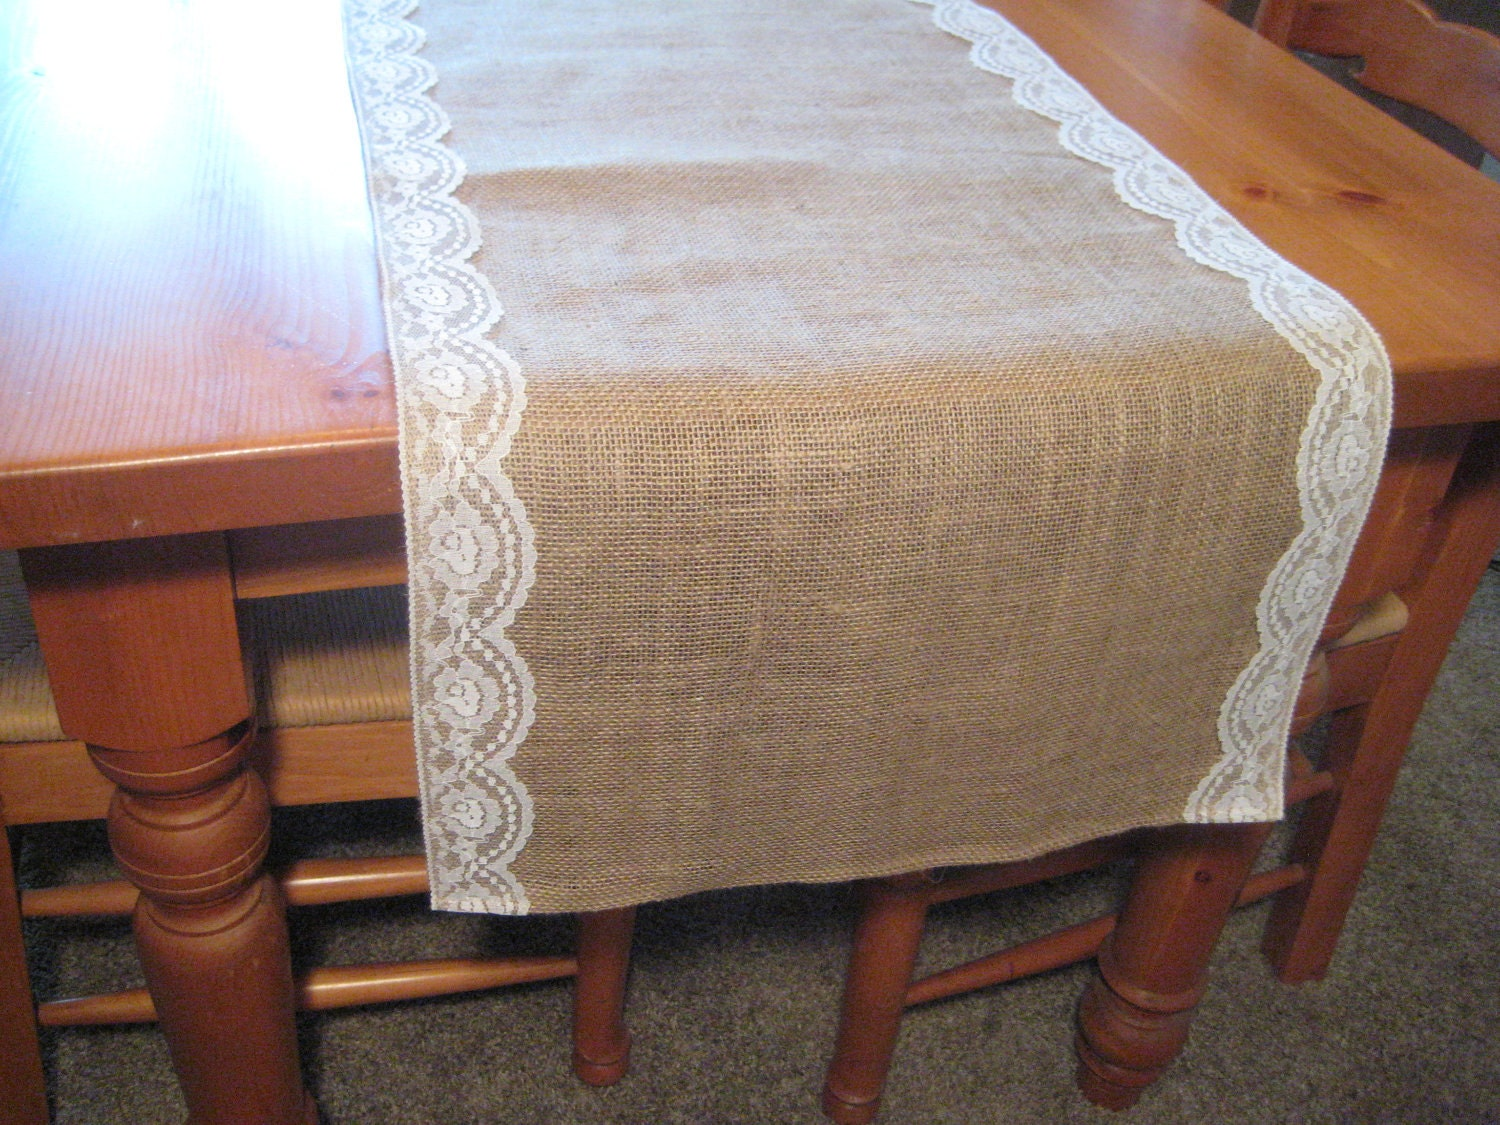 Burlap and Lace Runner Table Runner Rustic by YourDivineAffair